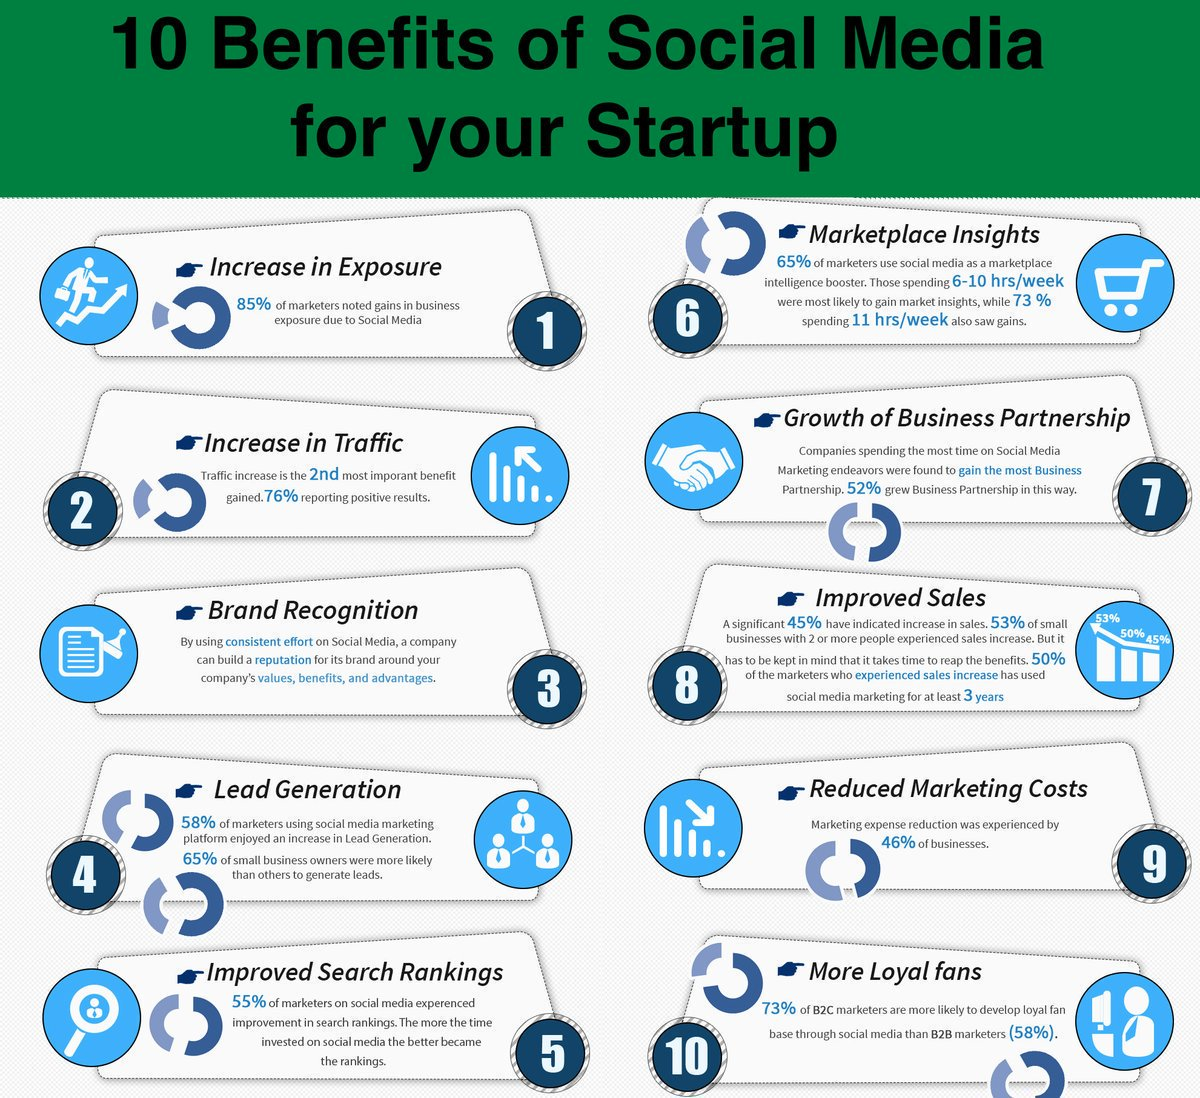 10 Benefits of #SocialMedia for Your #Startup Success [Infographic] #SMM #SocialMediaMarketing #LeadGeneration #Sales #SEO #Branding<br>http://pic.twitter.com/ZuWMewZhn2